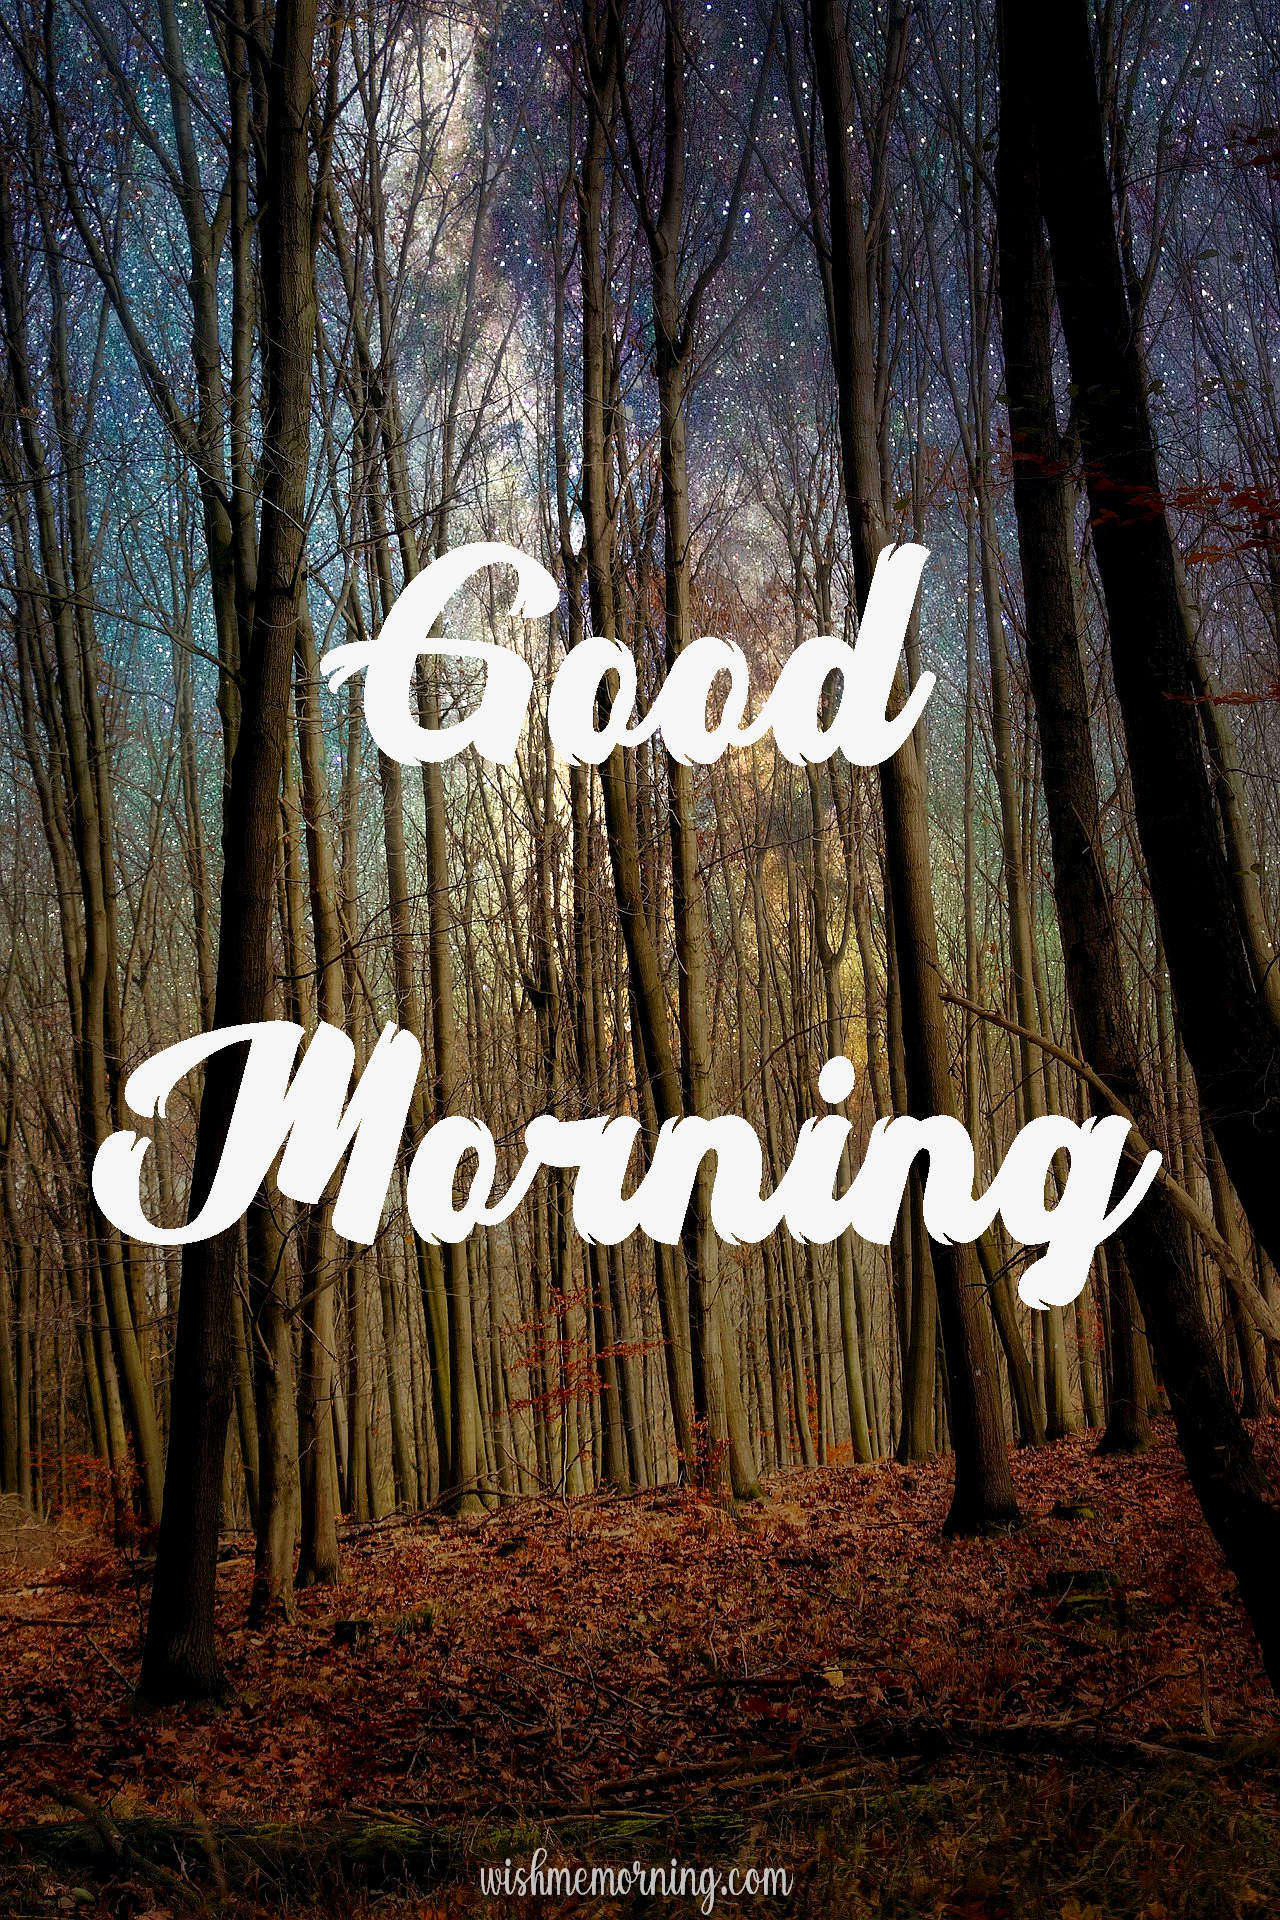 Beautiful Trees Woods Nature Images Wishes wishmemorning.com 8